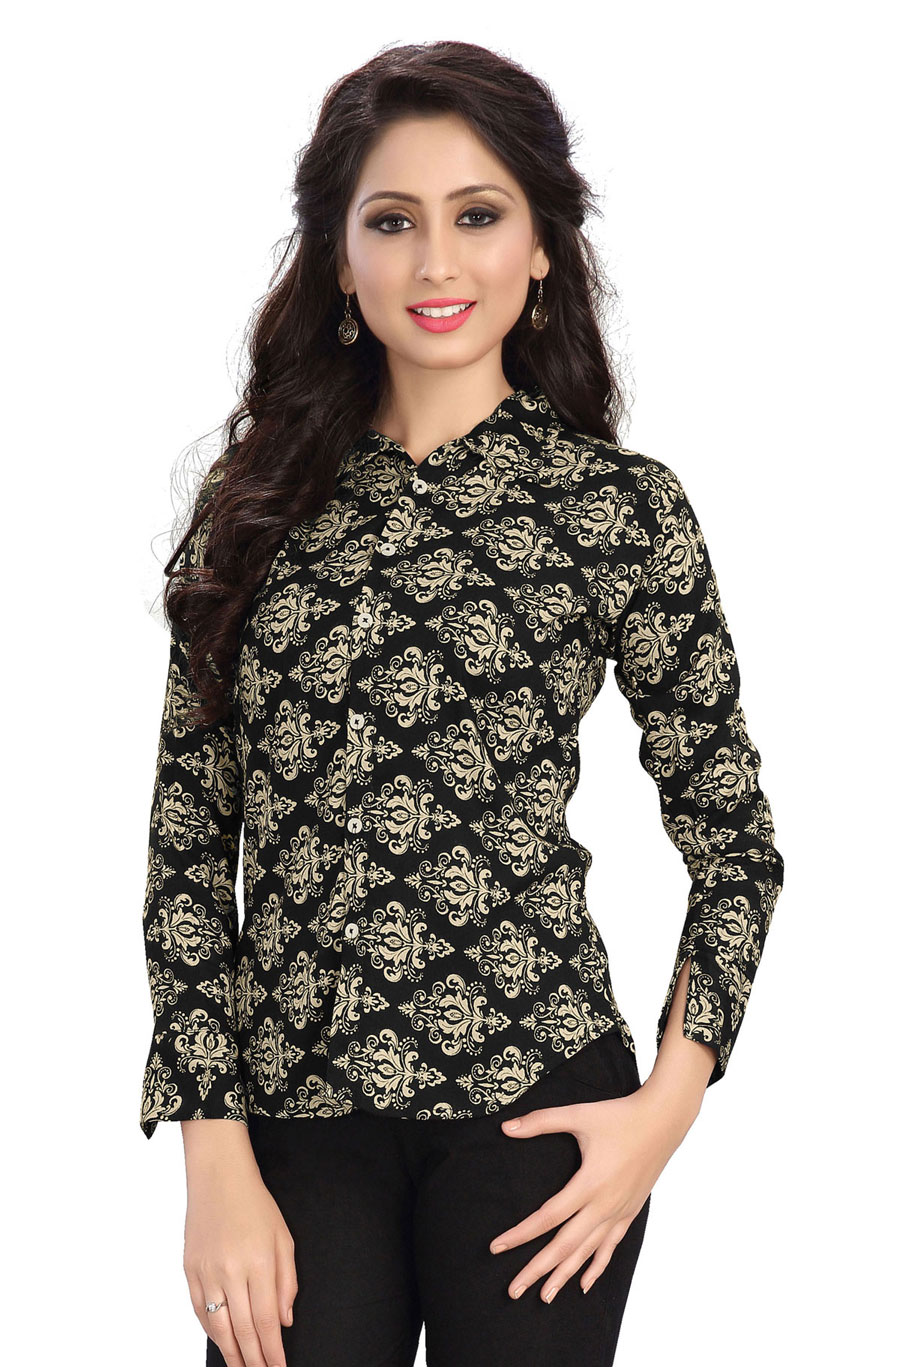 Western Culture 3 – Latest New Rayon Cotton Stylish Top